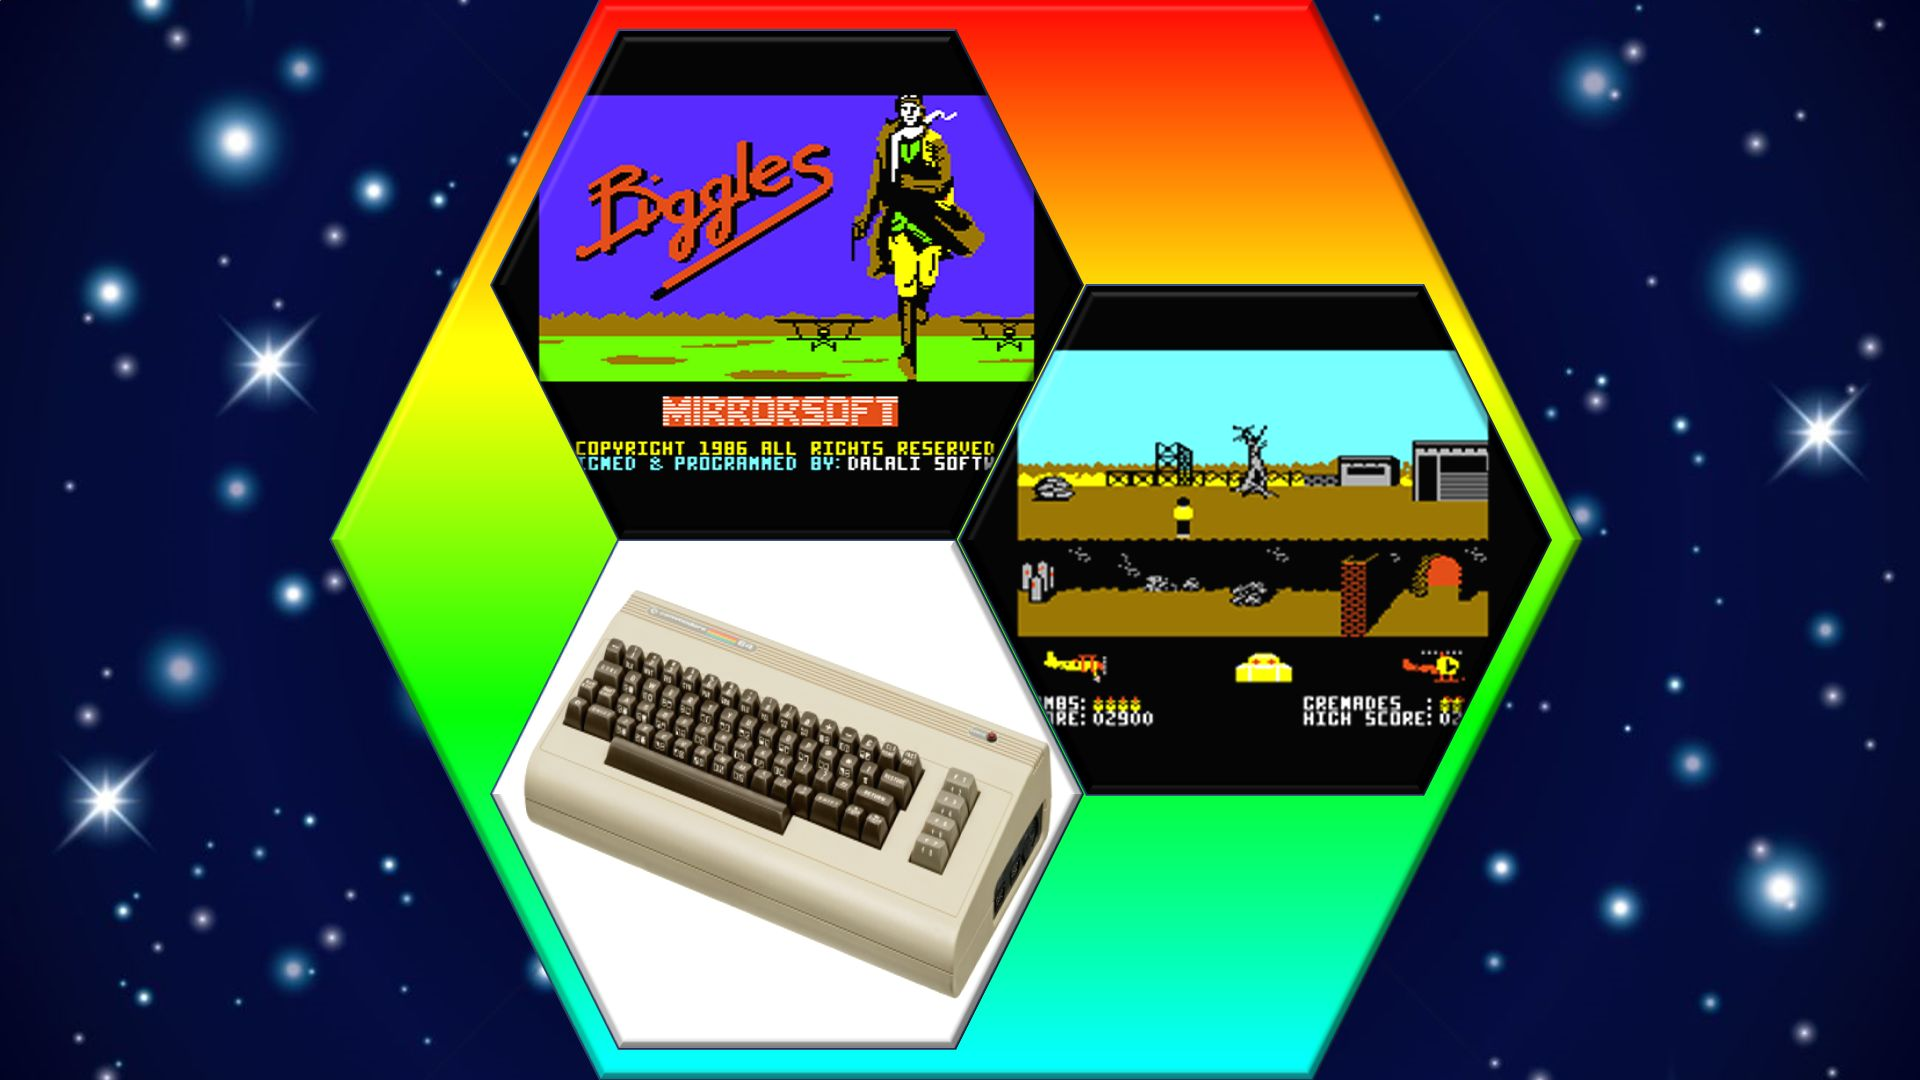 /biggles-commodore-64-retro-game-review-ca1x34r2 feature image